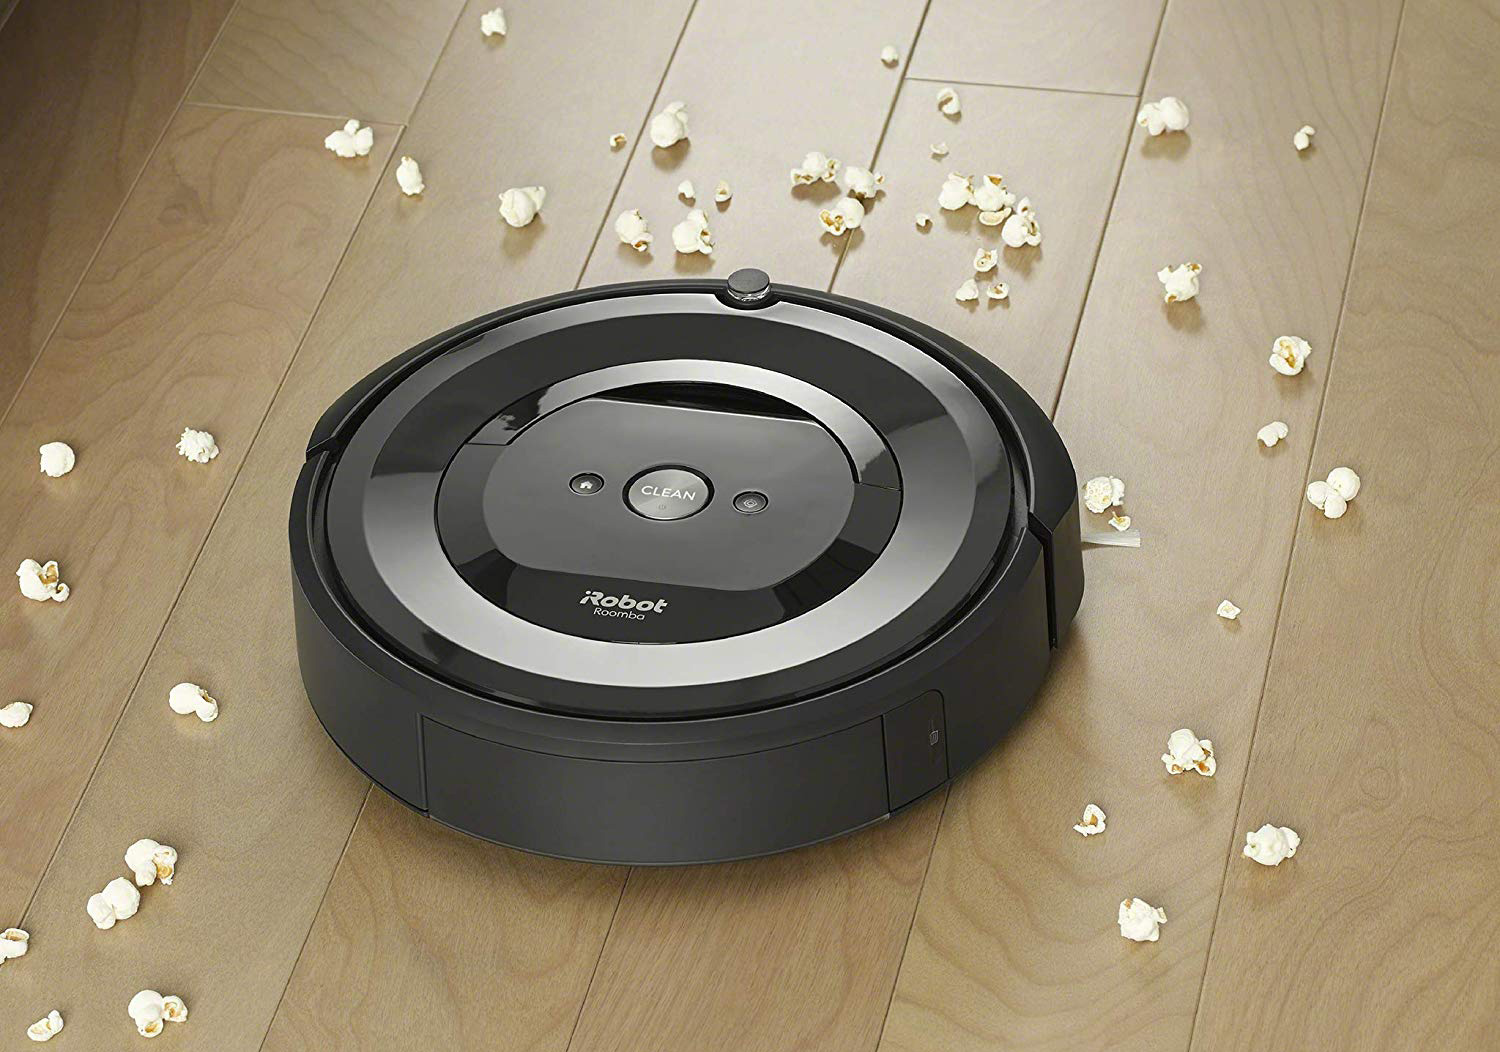 Black Friday Roomba Robot Vacuum Deals Start At 179 But They Re Bound To Sell Out Bgr